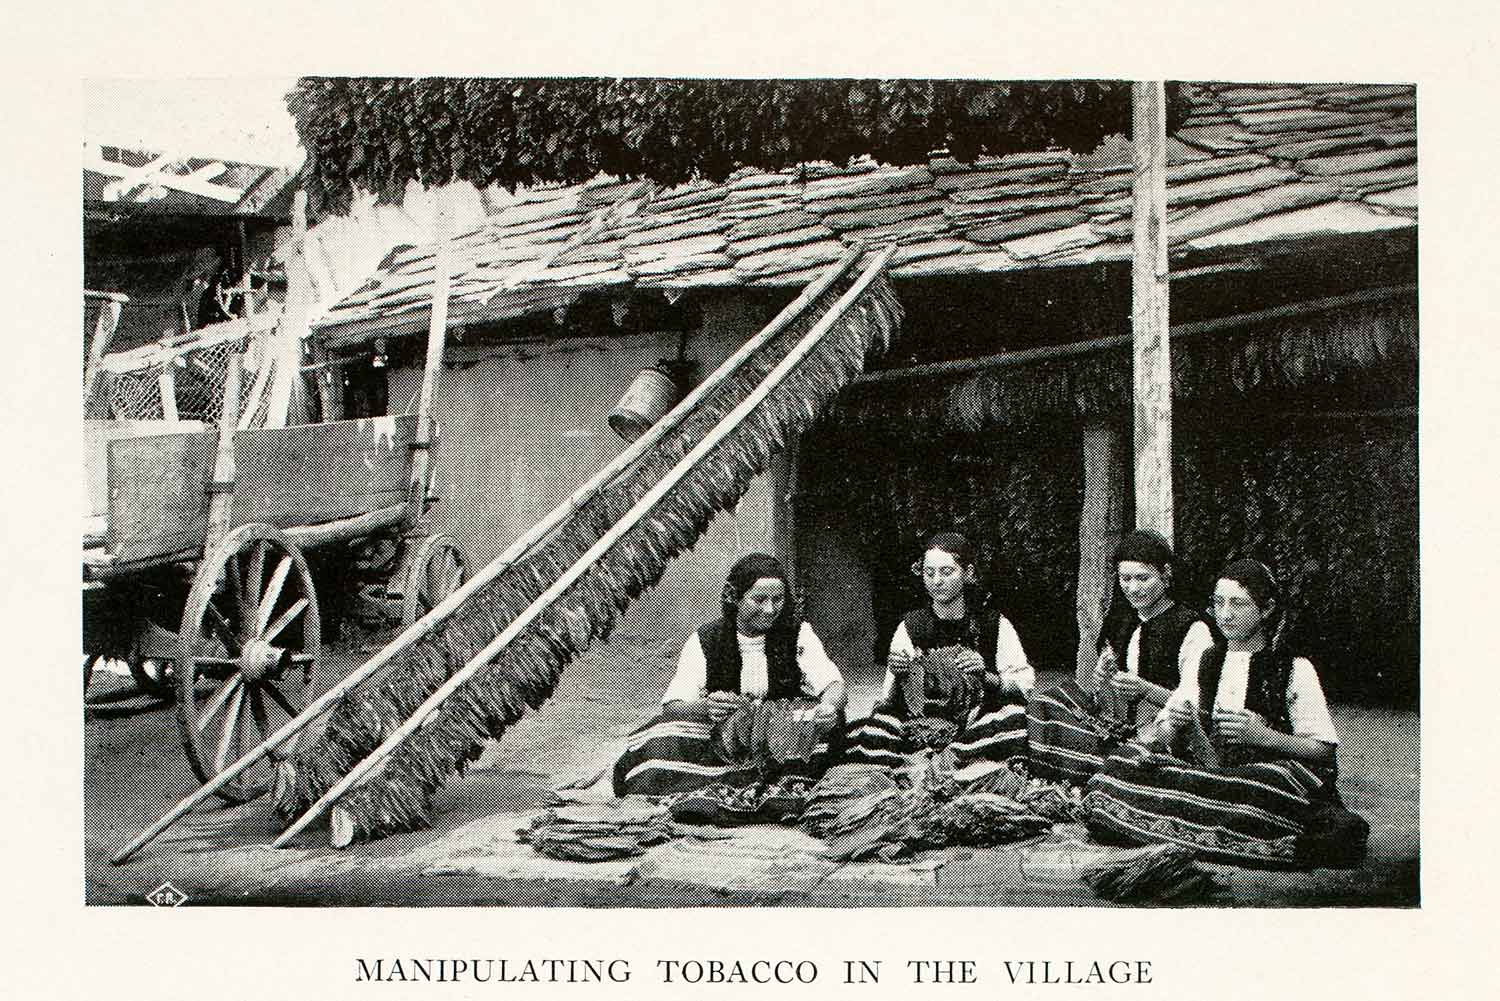 1933 Halftone Print Tobacco Harvest Roll Manipulate Costume Village XGUA4